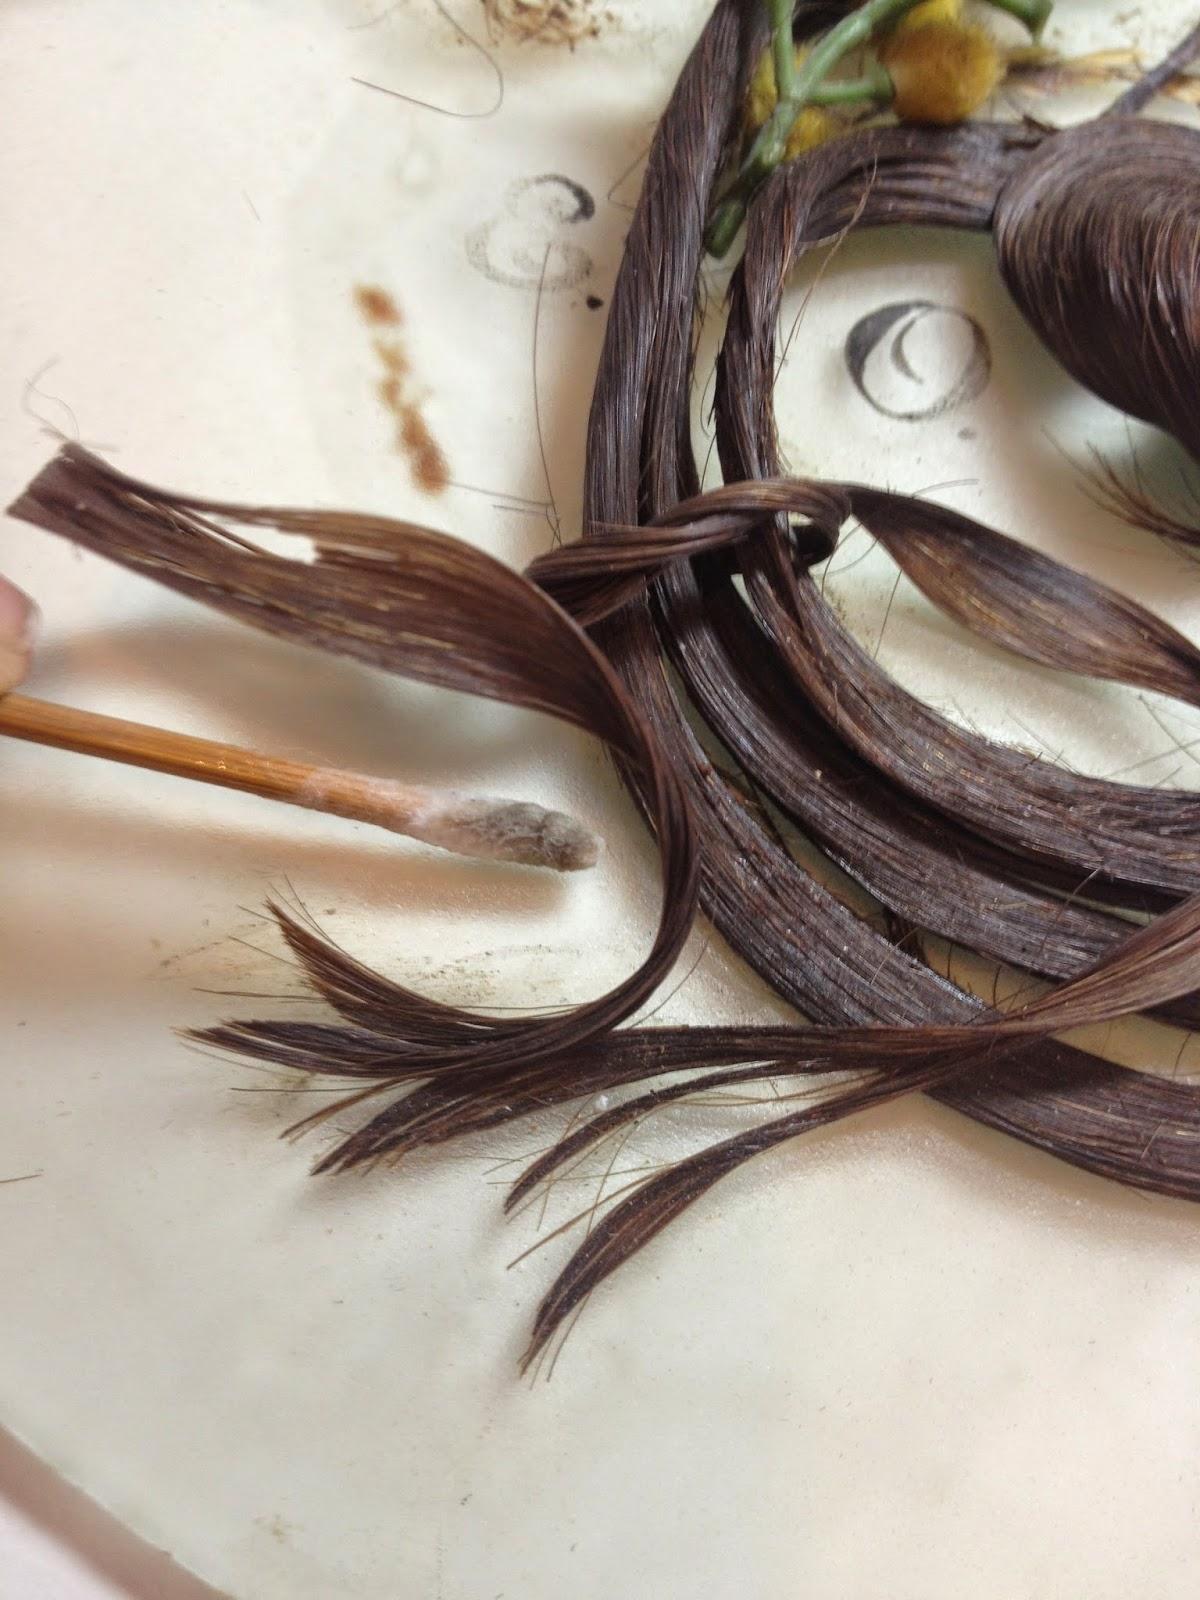 Objects art conservator, Gwen Spicer carefully removes dirt and debris from this Victorian Hair Art